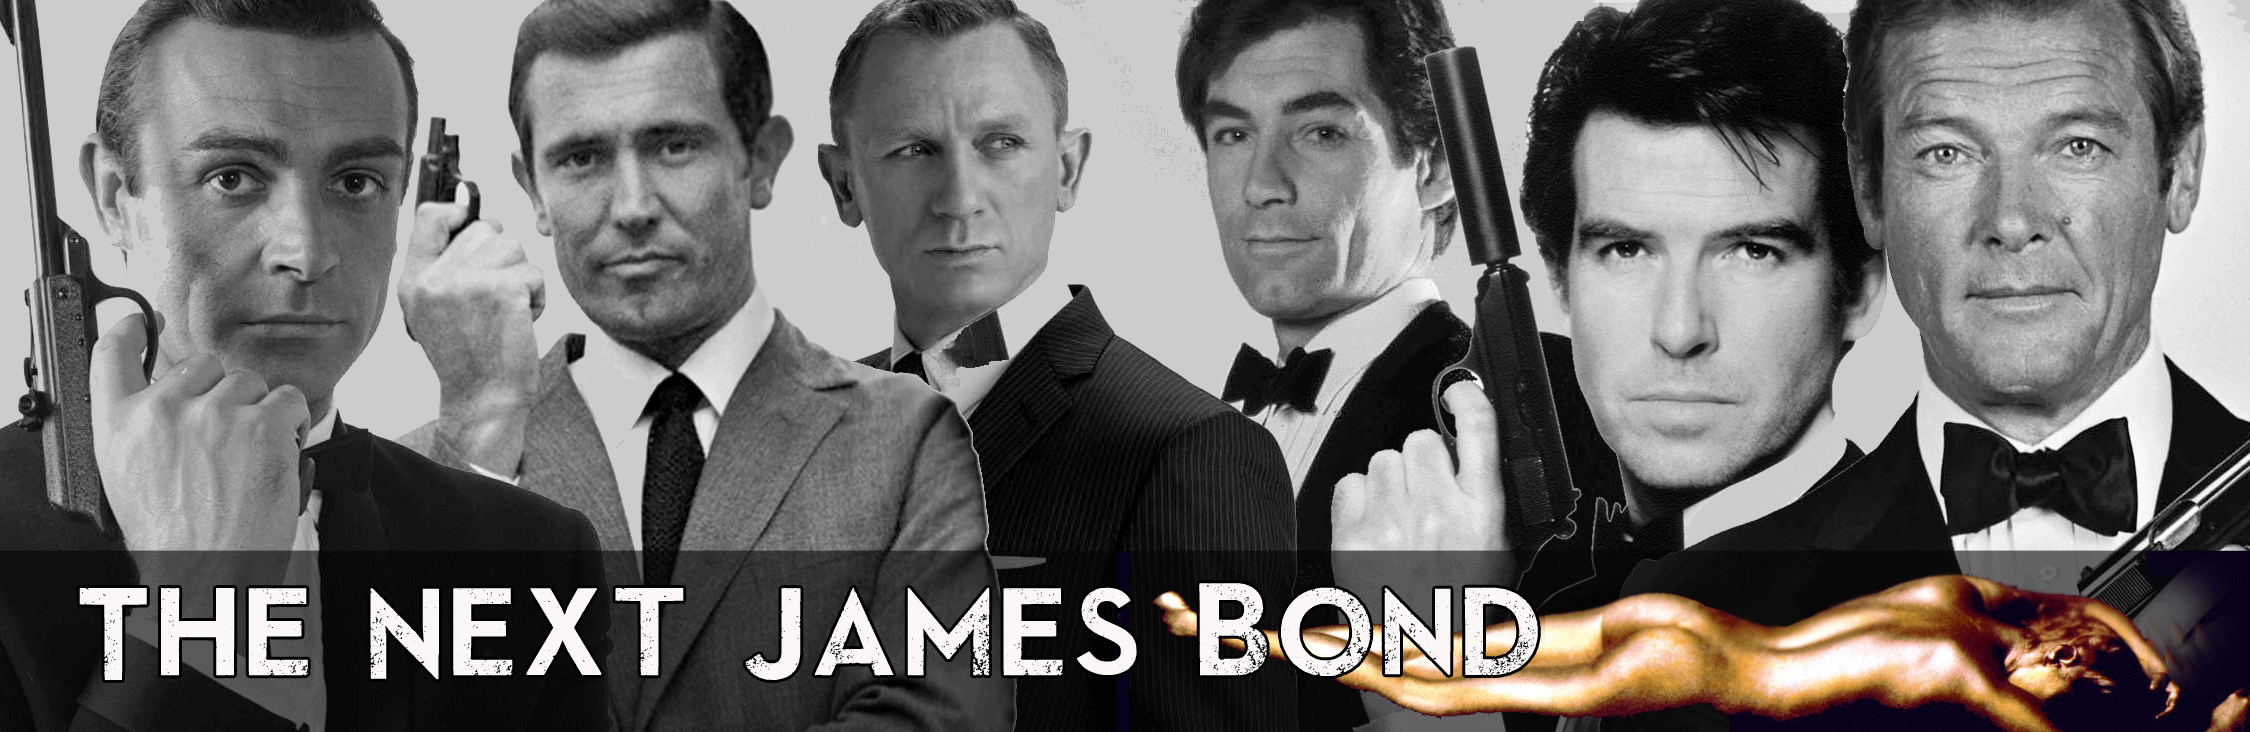 the next james bond